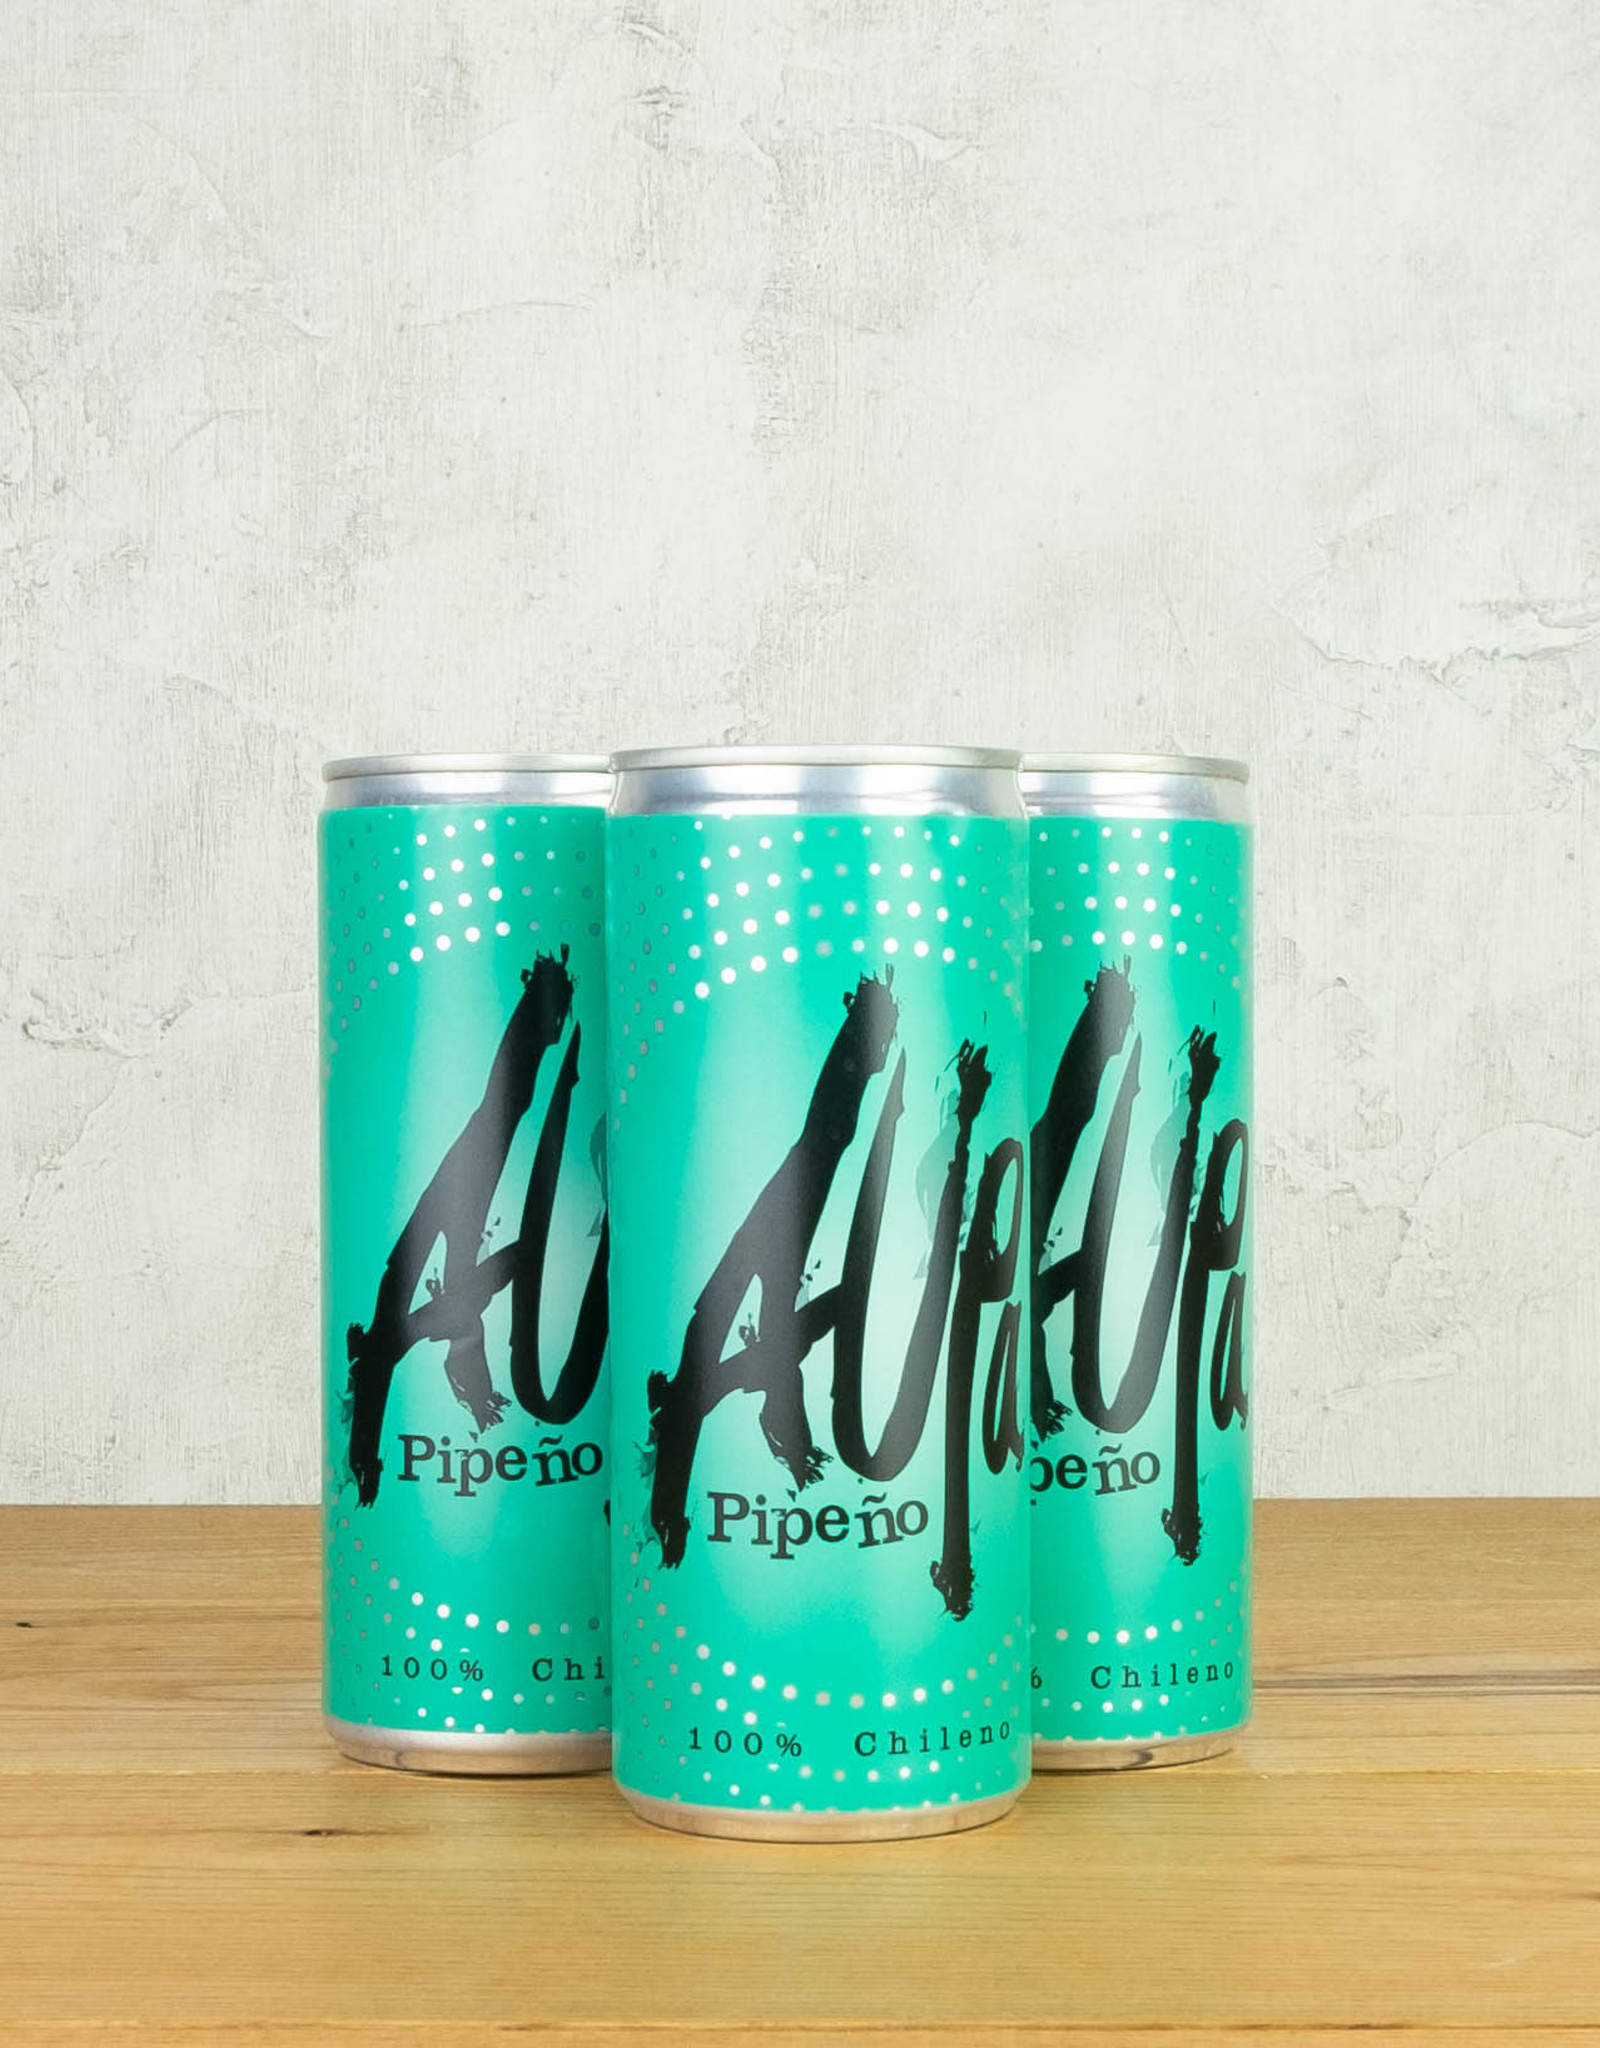 Aupa Pipeno 4pk cans